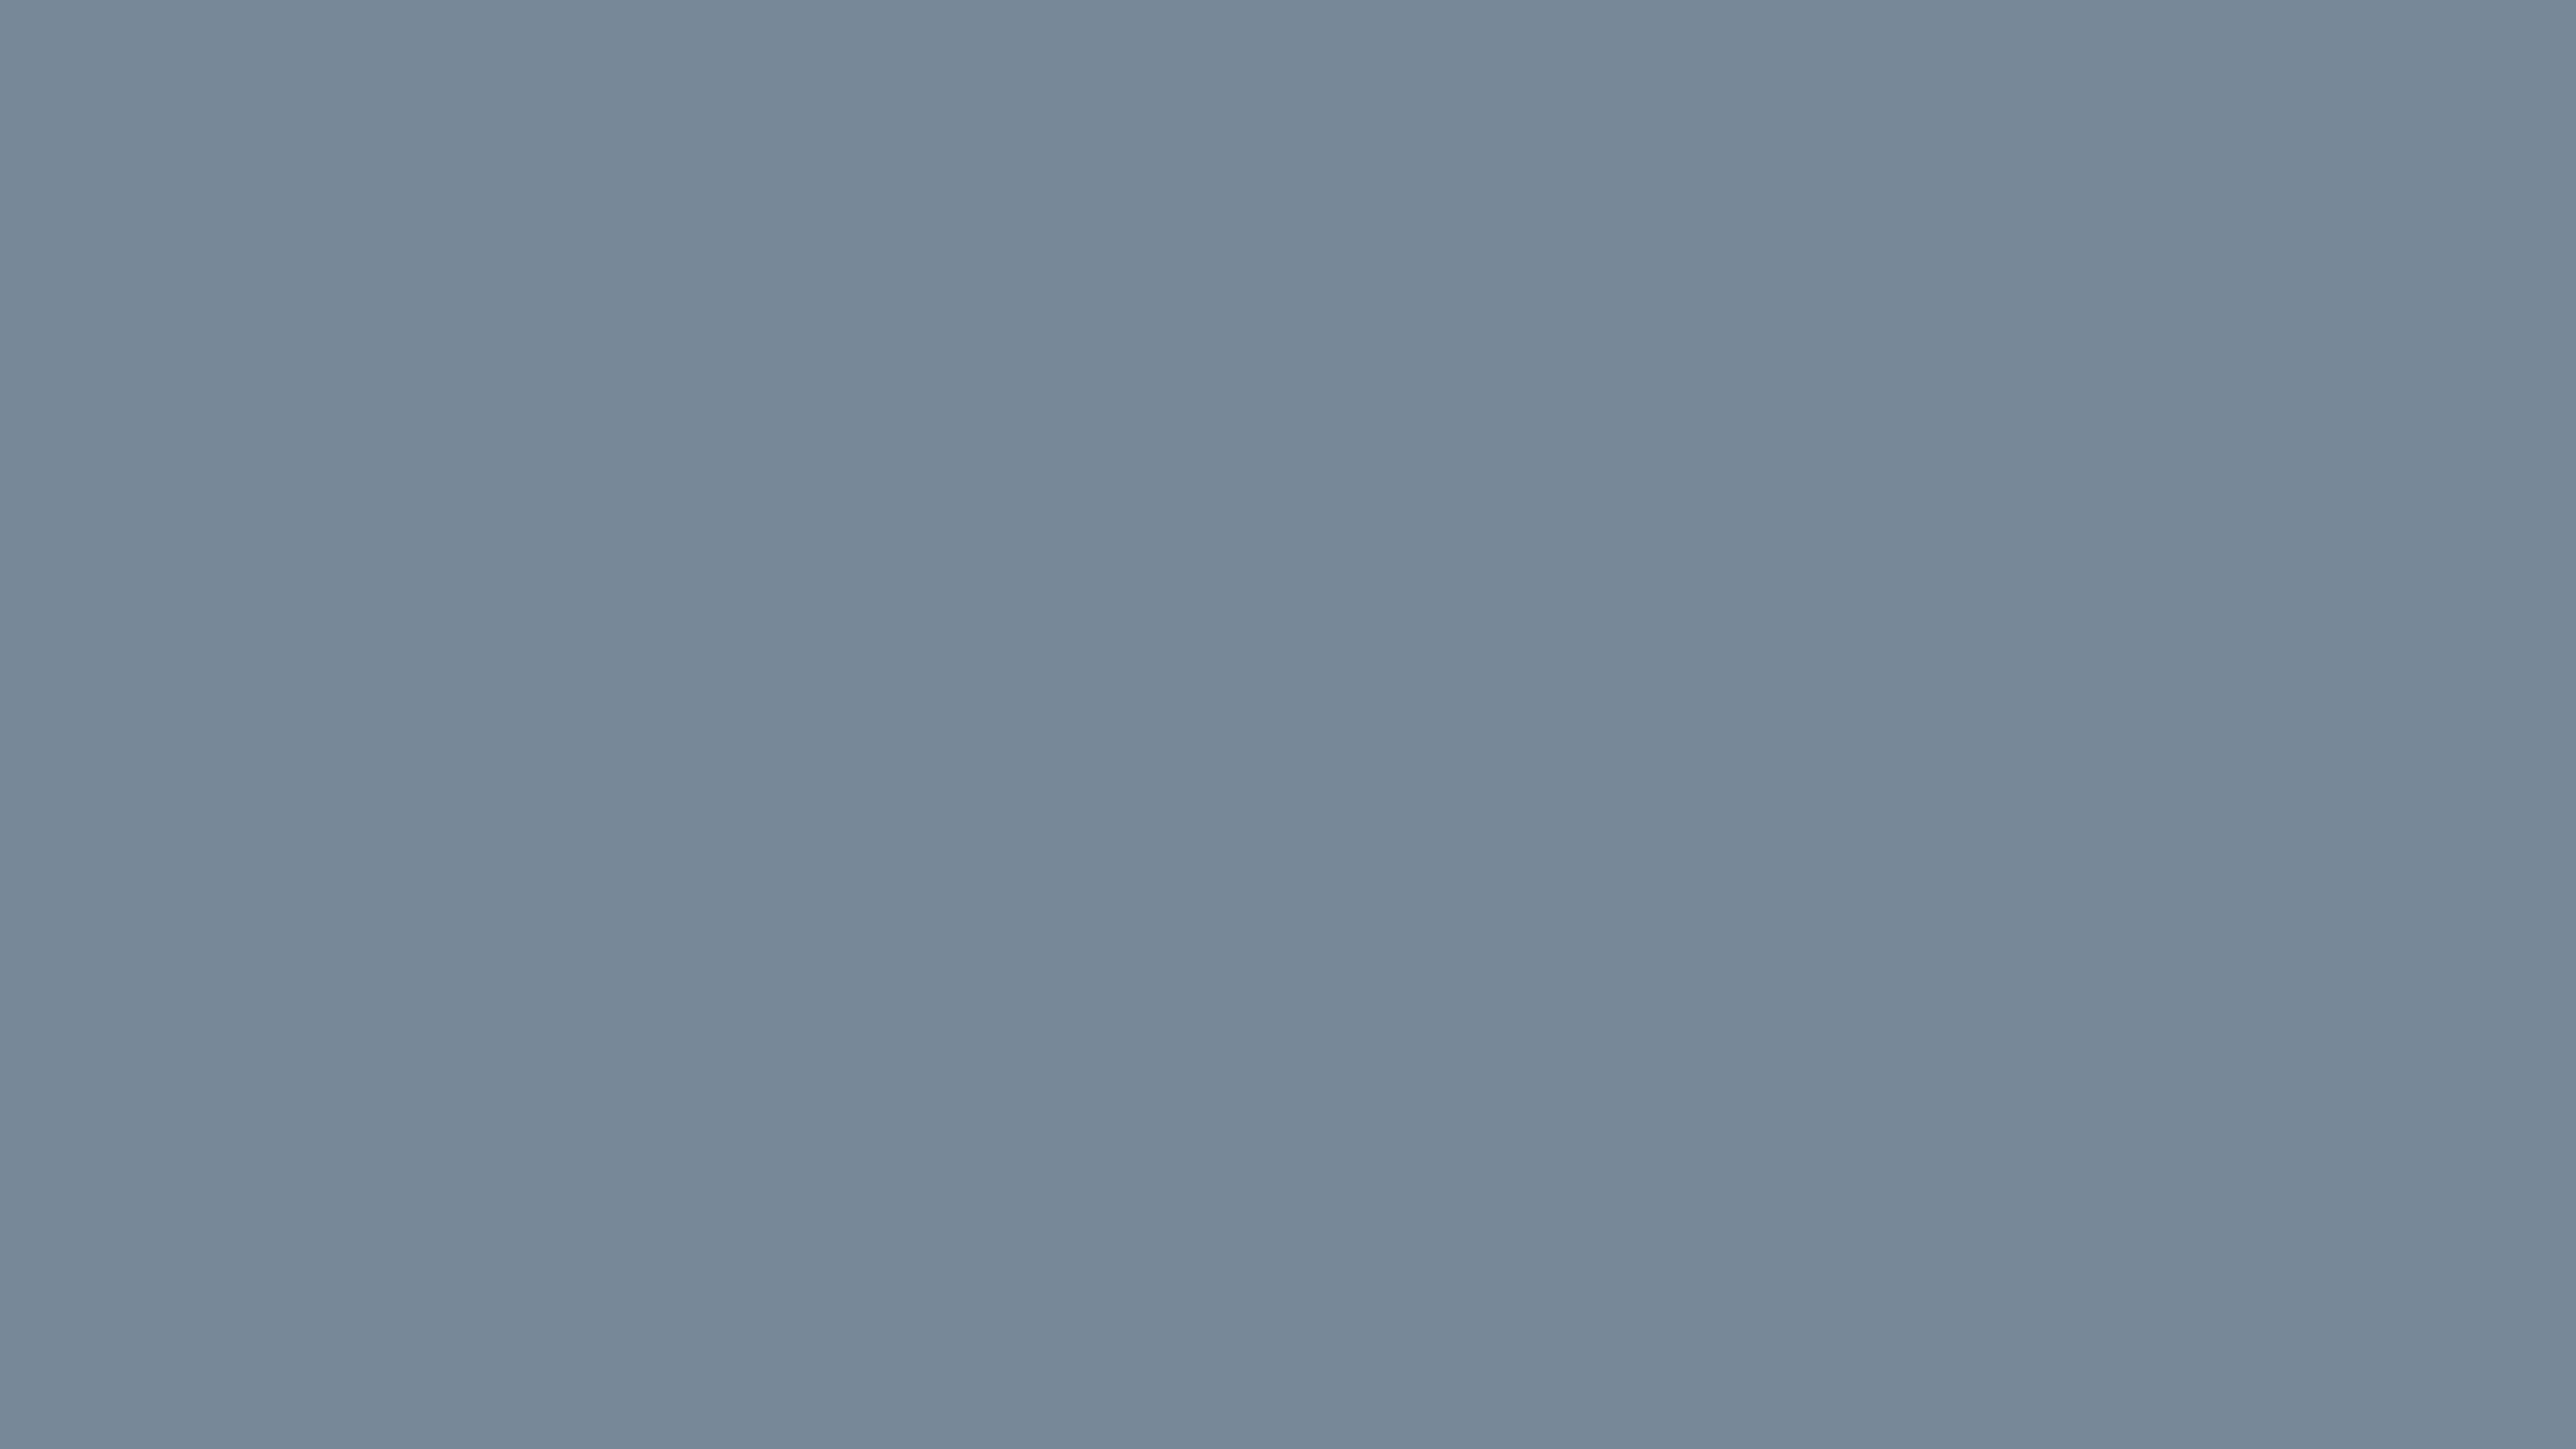 4096x2304 Light Slate Gray Solid Color Background